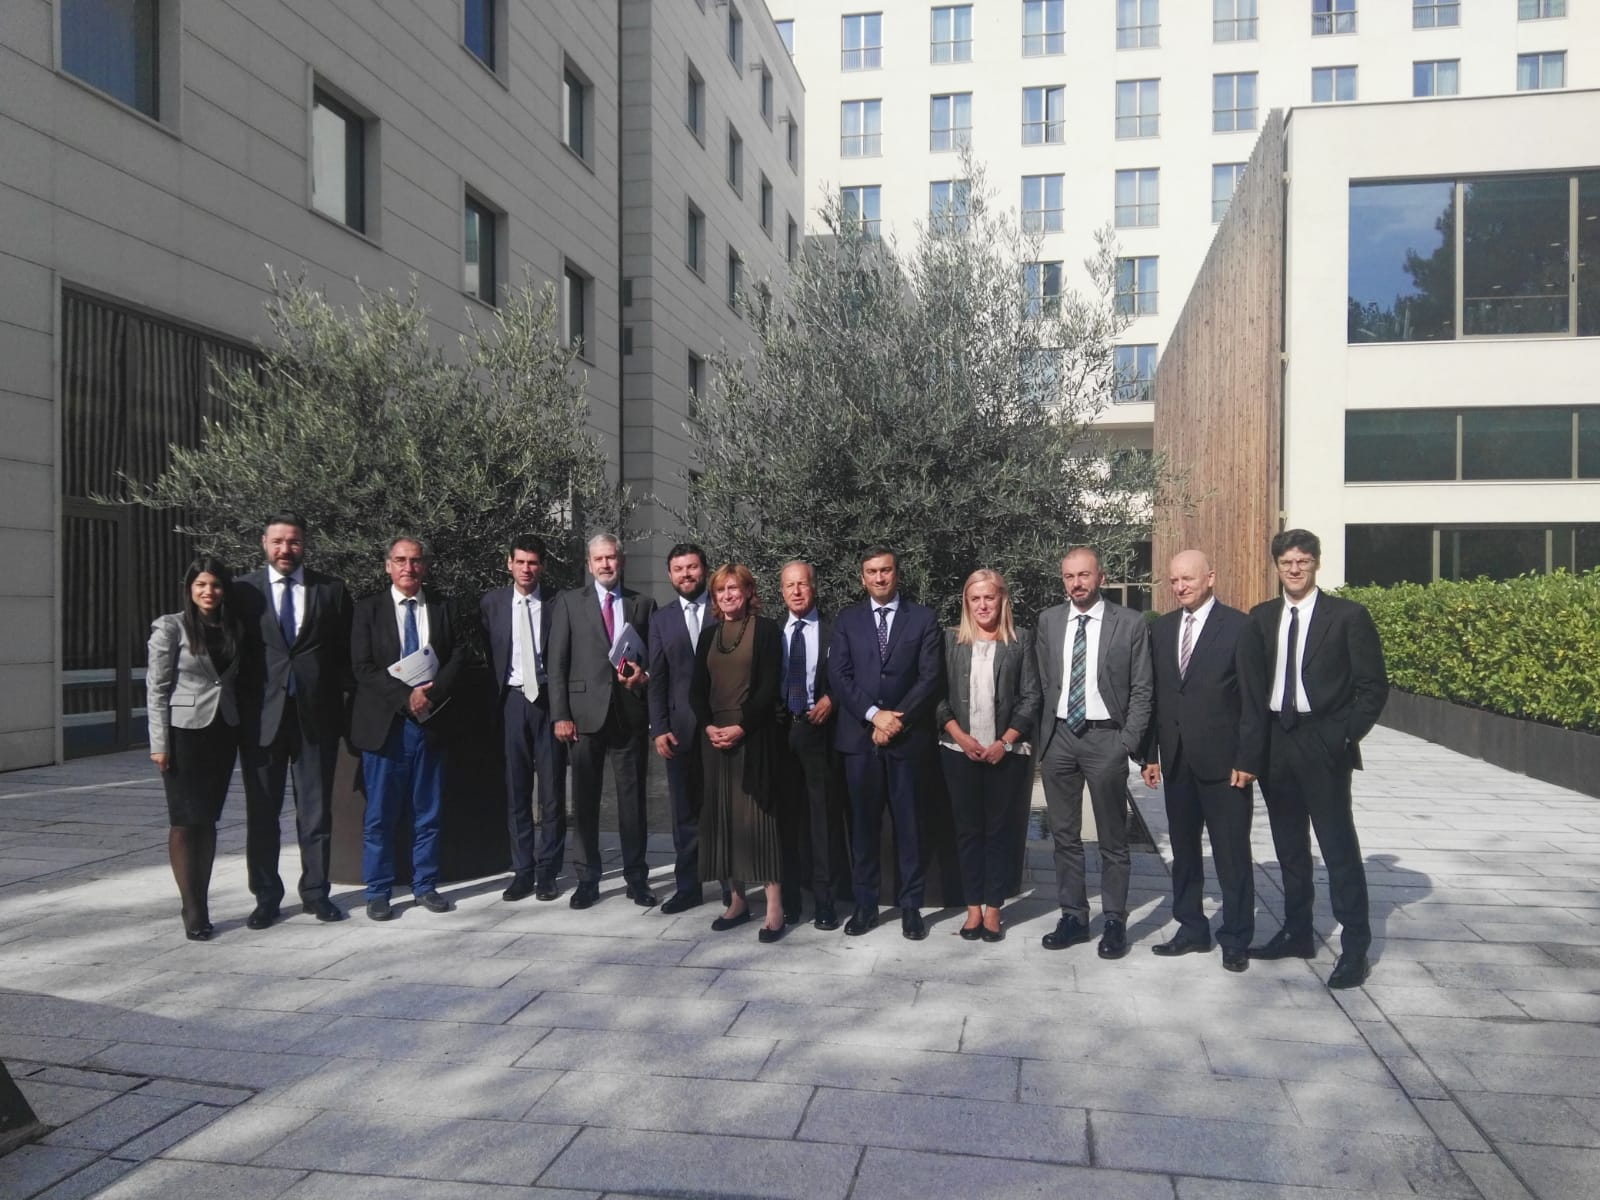 AII COMMITTEE OF SENIOR OFFICIALS AND 8TH EUSAIR GOVERNING BOARD HELD IN PODGORICA - 3 OCTOBER 2018